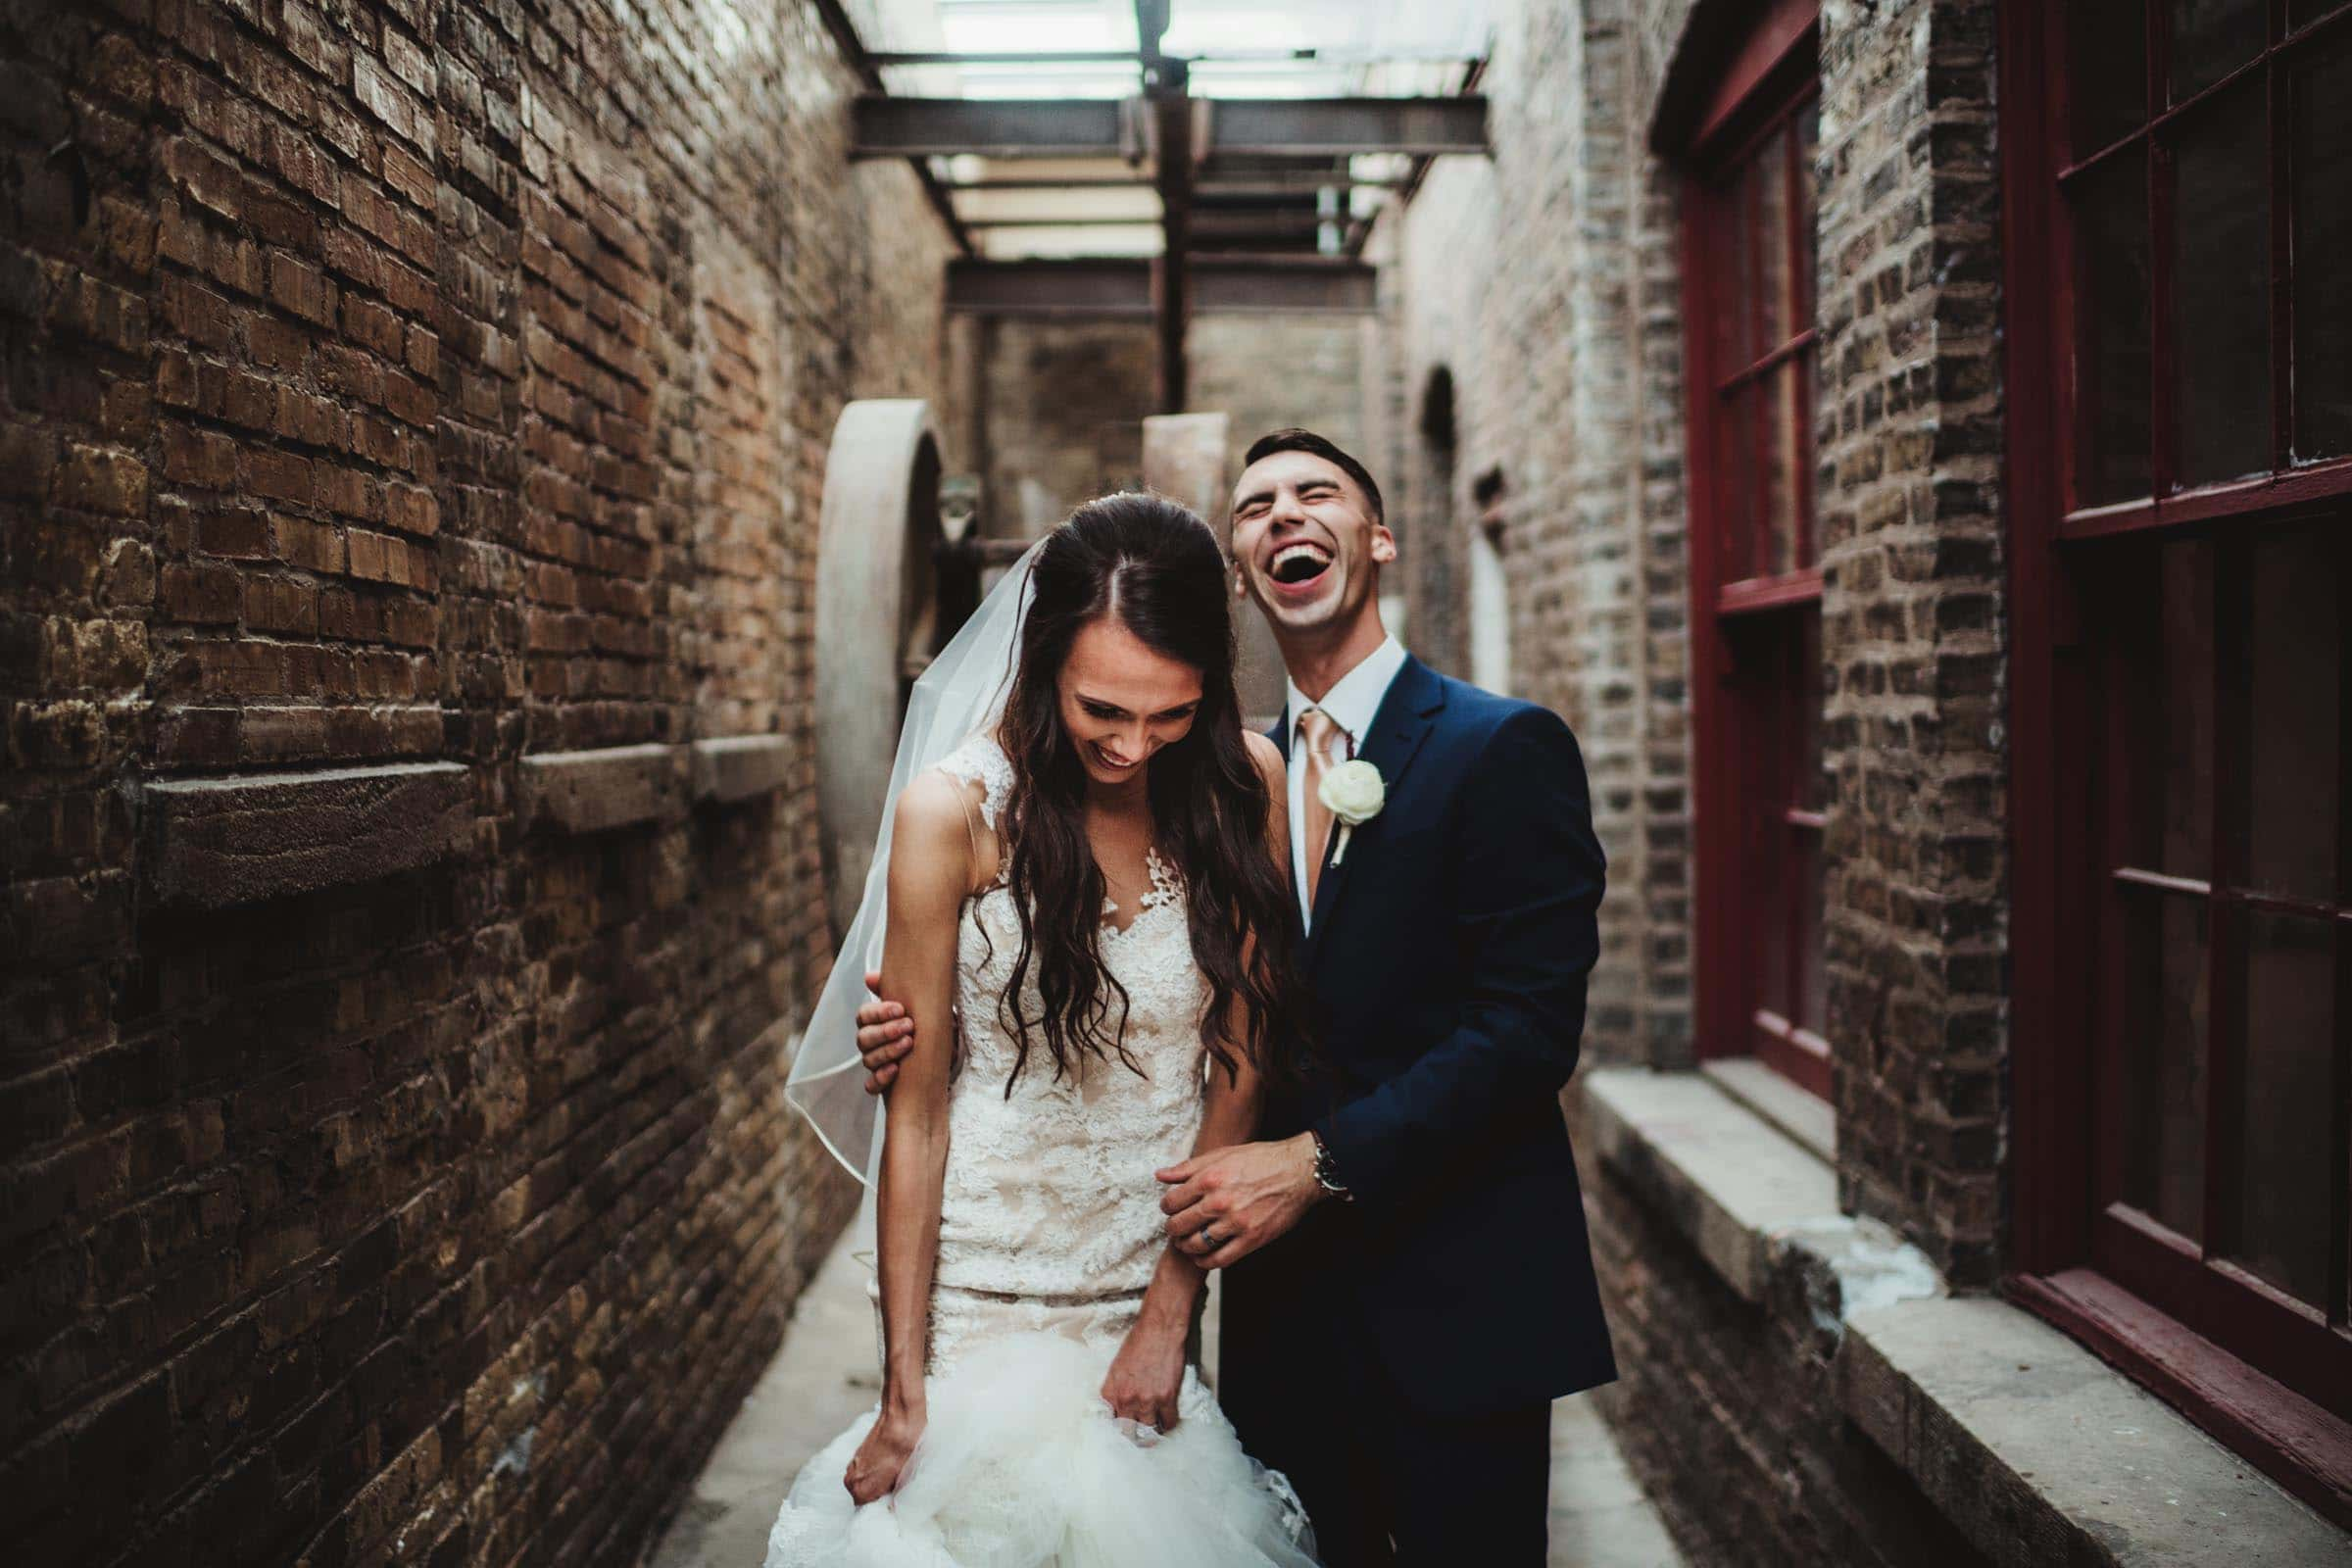 Bride Groom Laughing in Alley